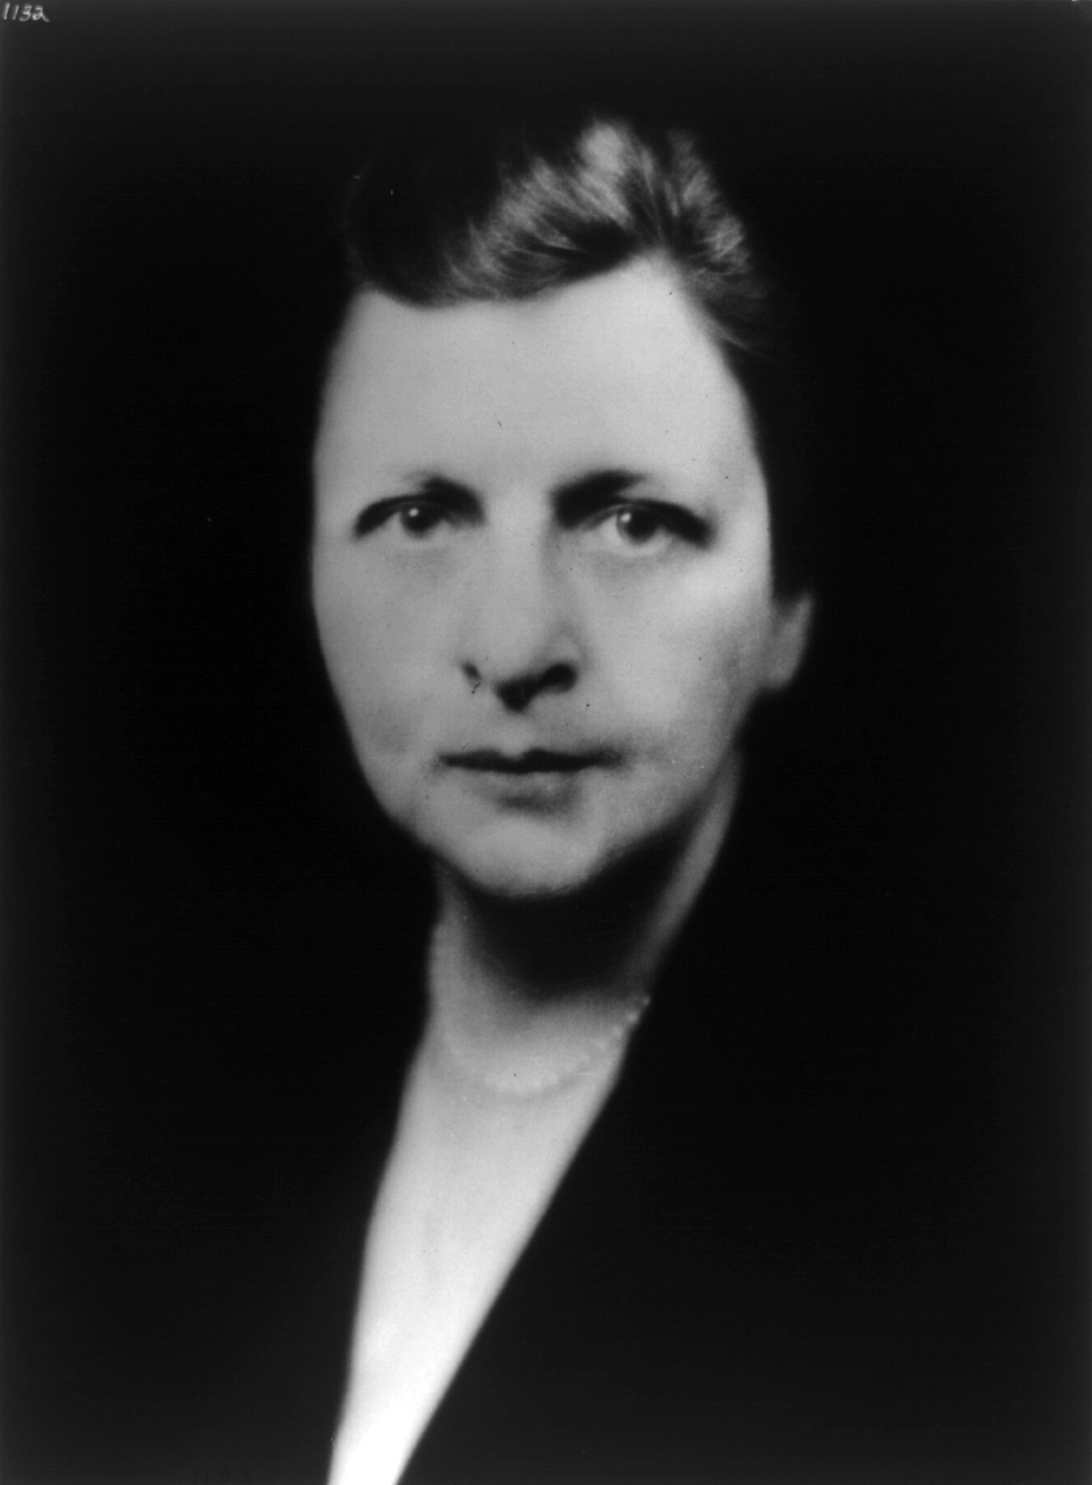 101 Frances_Perkins_cph.3a04983.jpg